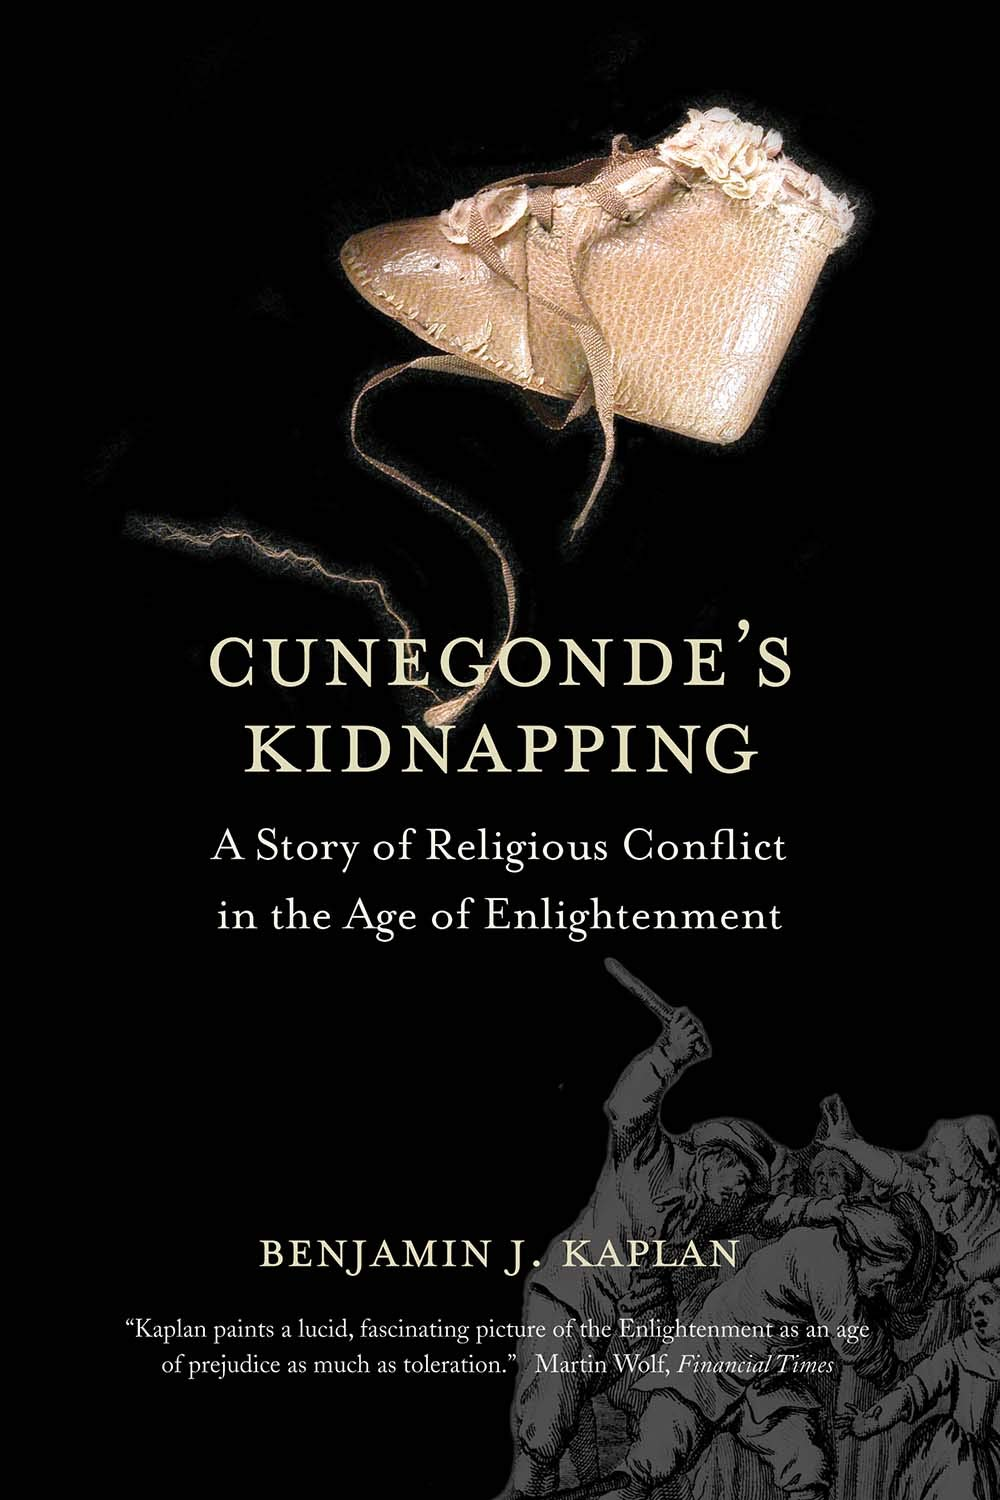 Cunegonde's Kidnapping: A Story of Religious Conflict in the Age of Enlightenment (The Lewis Walpole Series in Eighteenth-Century Culture and History)